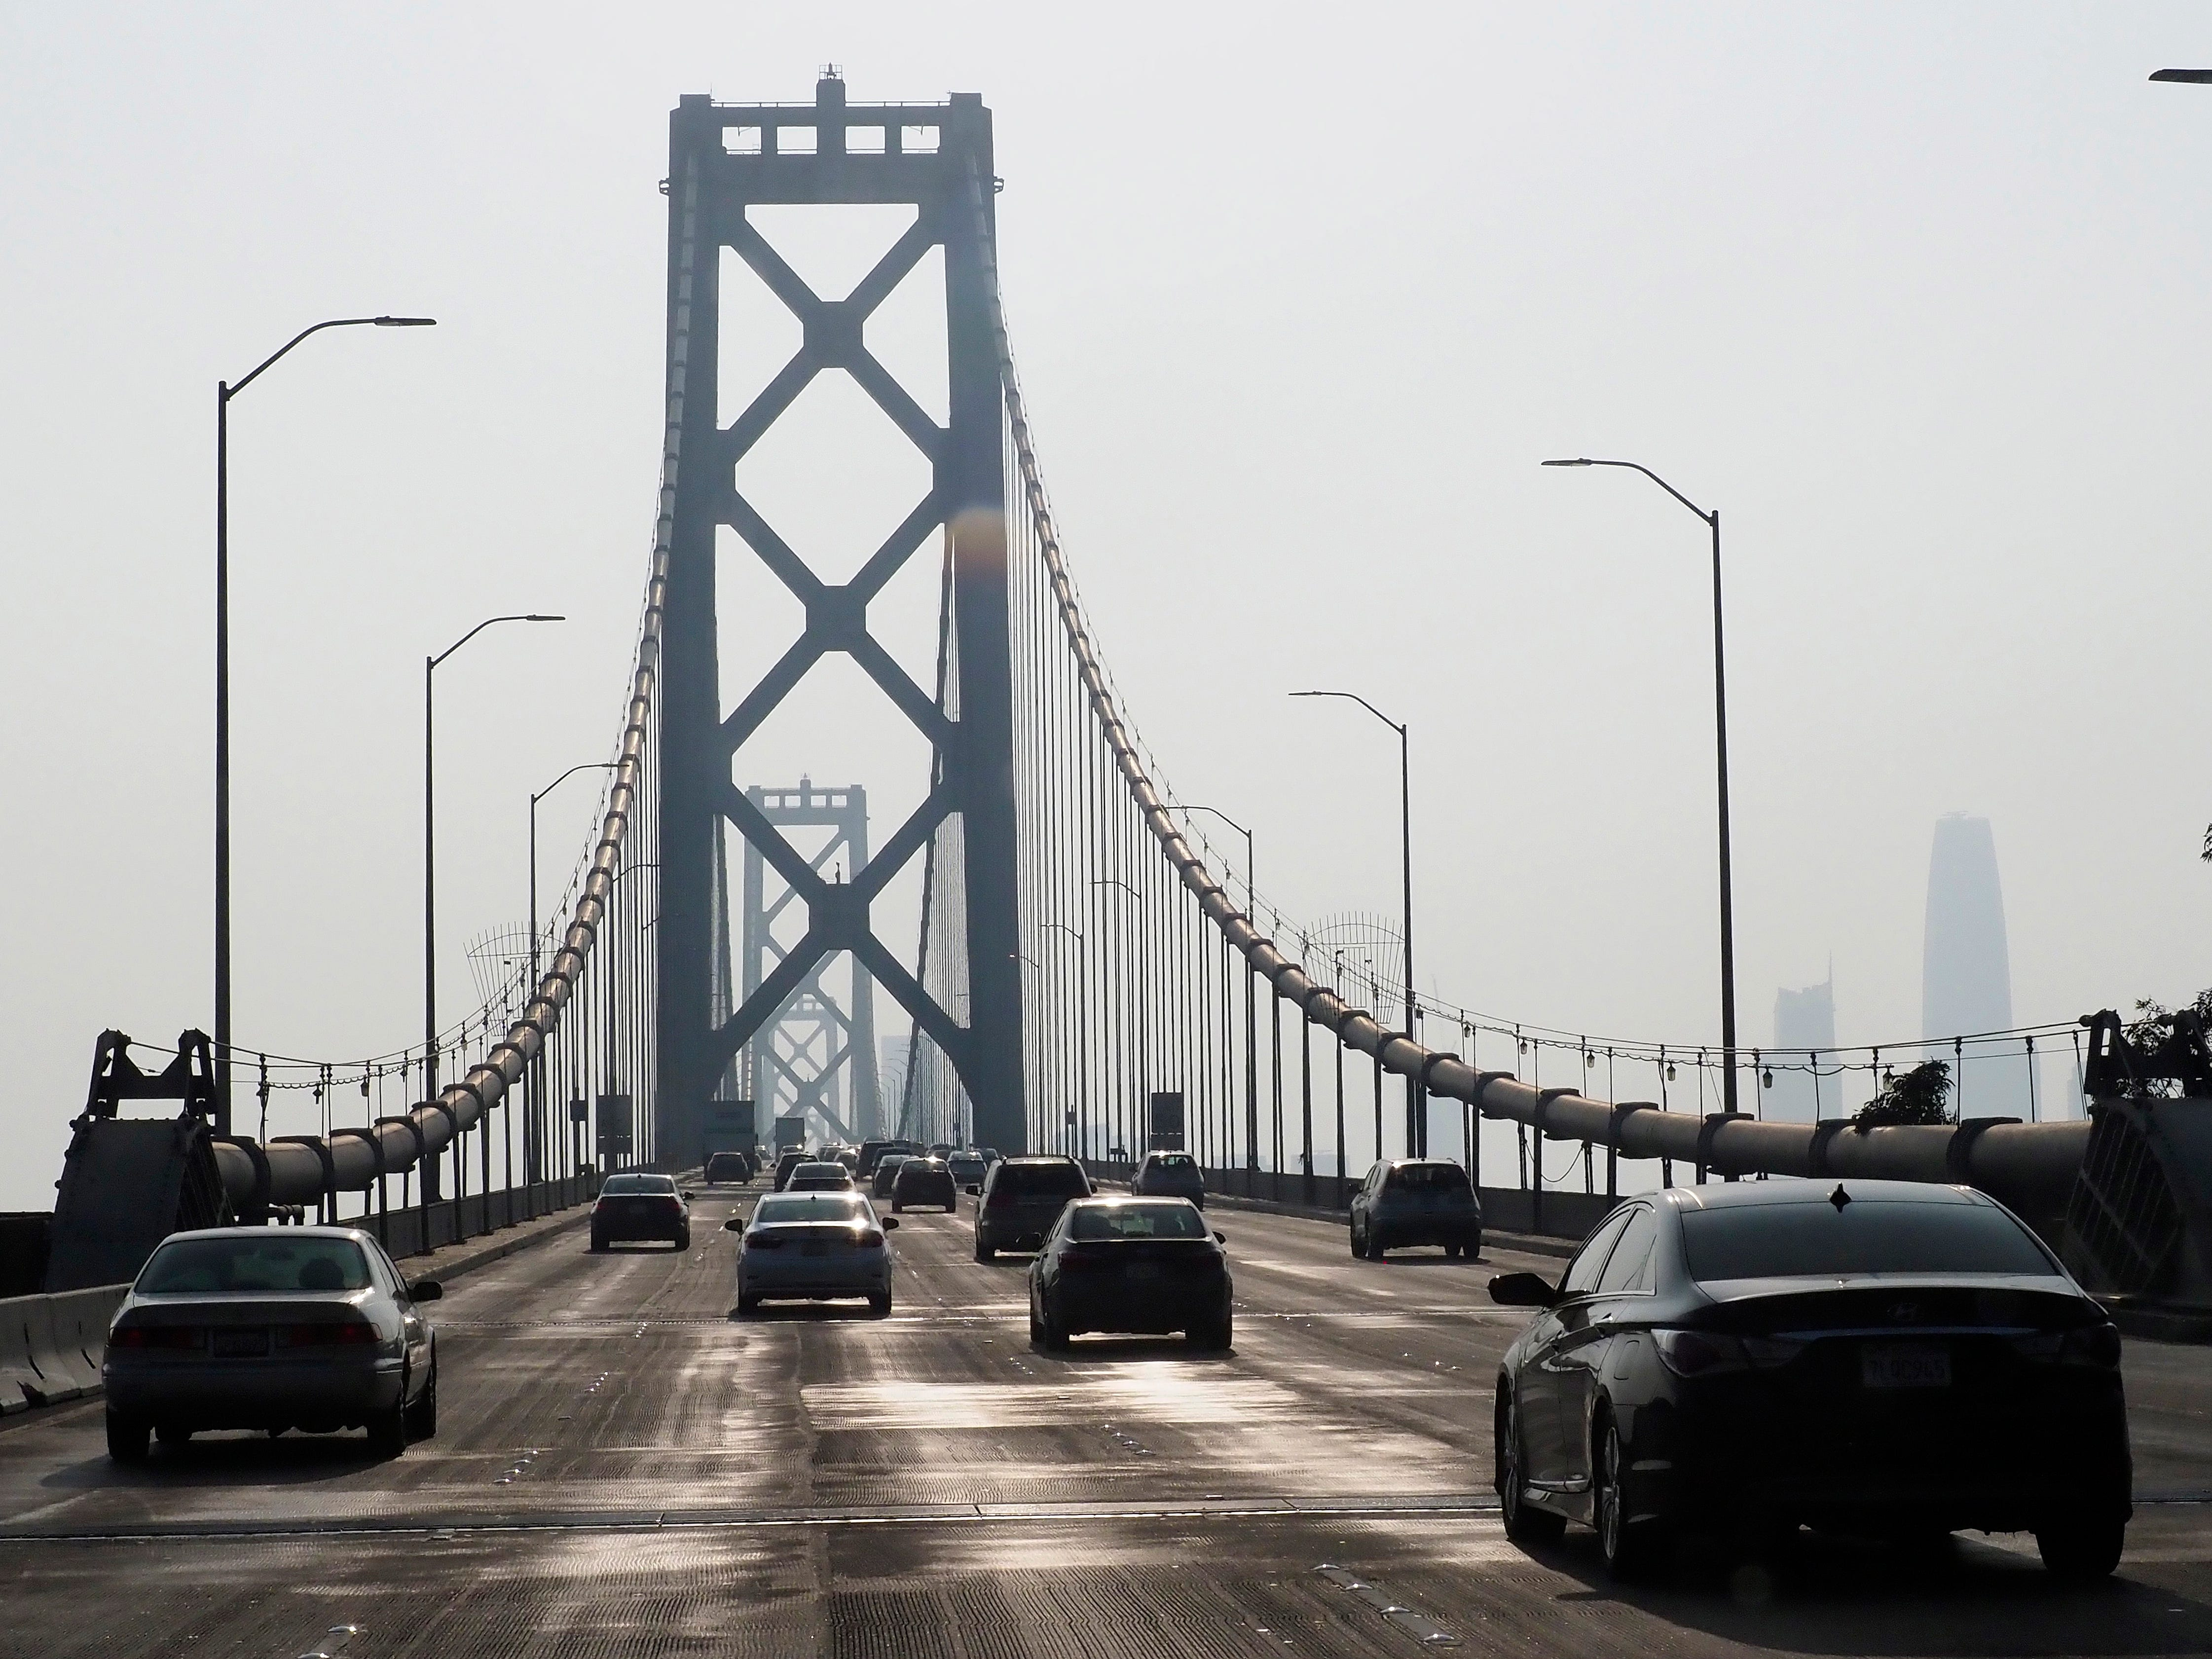 Cars drive on the Oakland-San Francisco Bay Bridge in San Francisco, Nov. 17, 2018, as the California wildfires smoke brings the poor air quality to Northern California. According to Purple Air, an air quality monitoring network, the smoke in California is worse than smoggy cities in India and China.